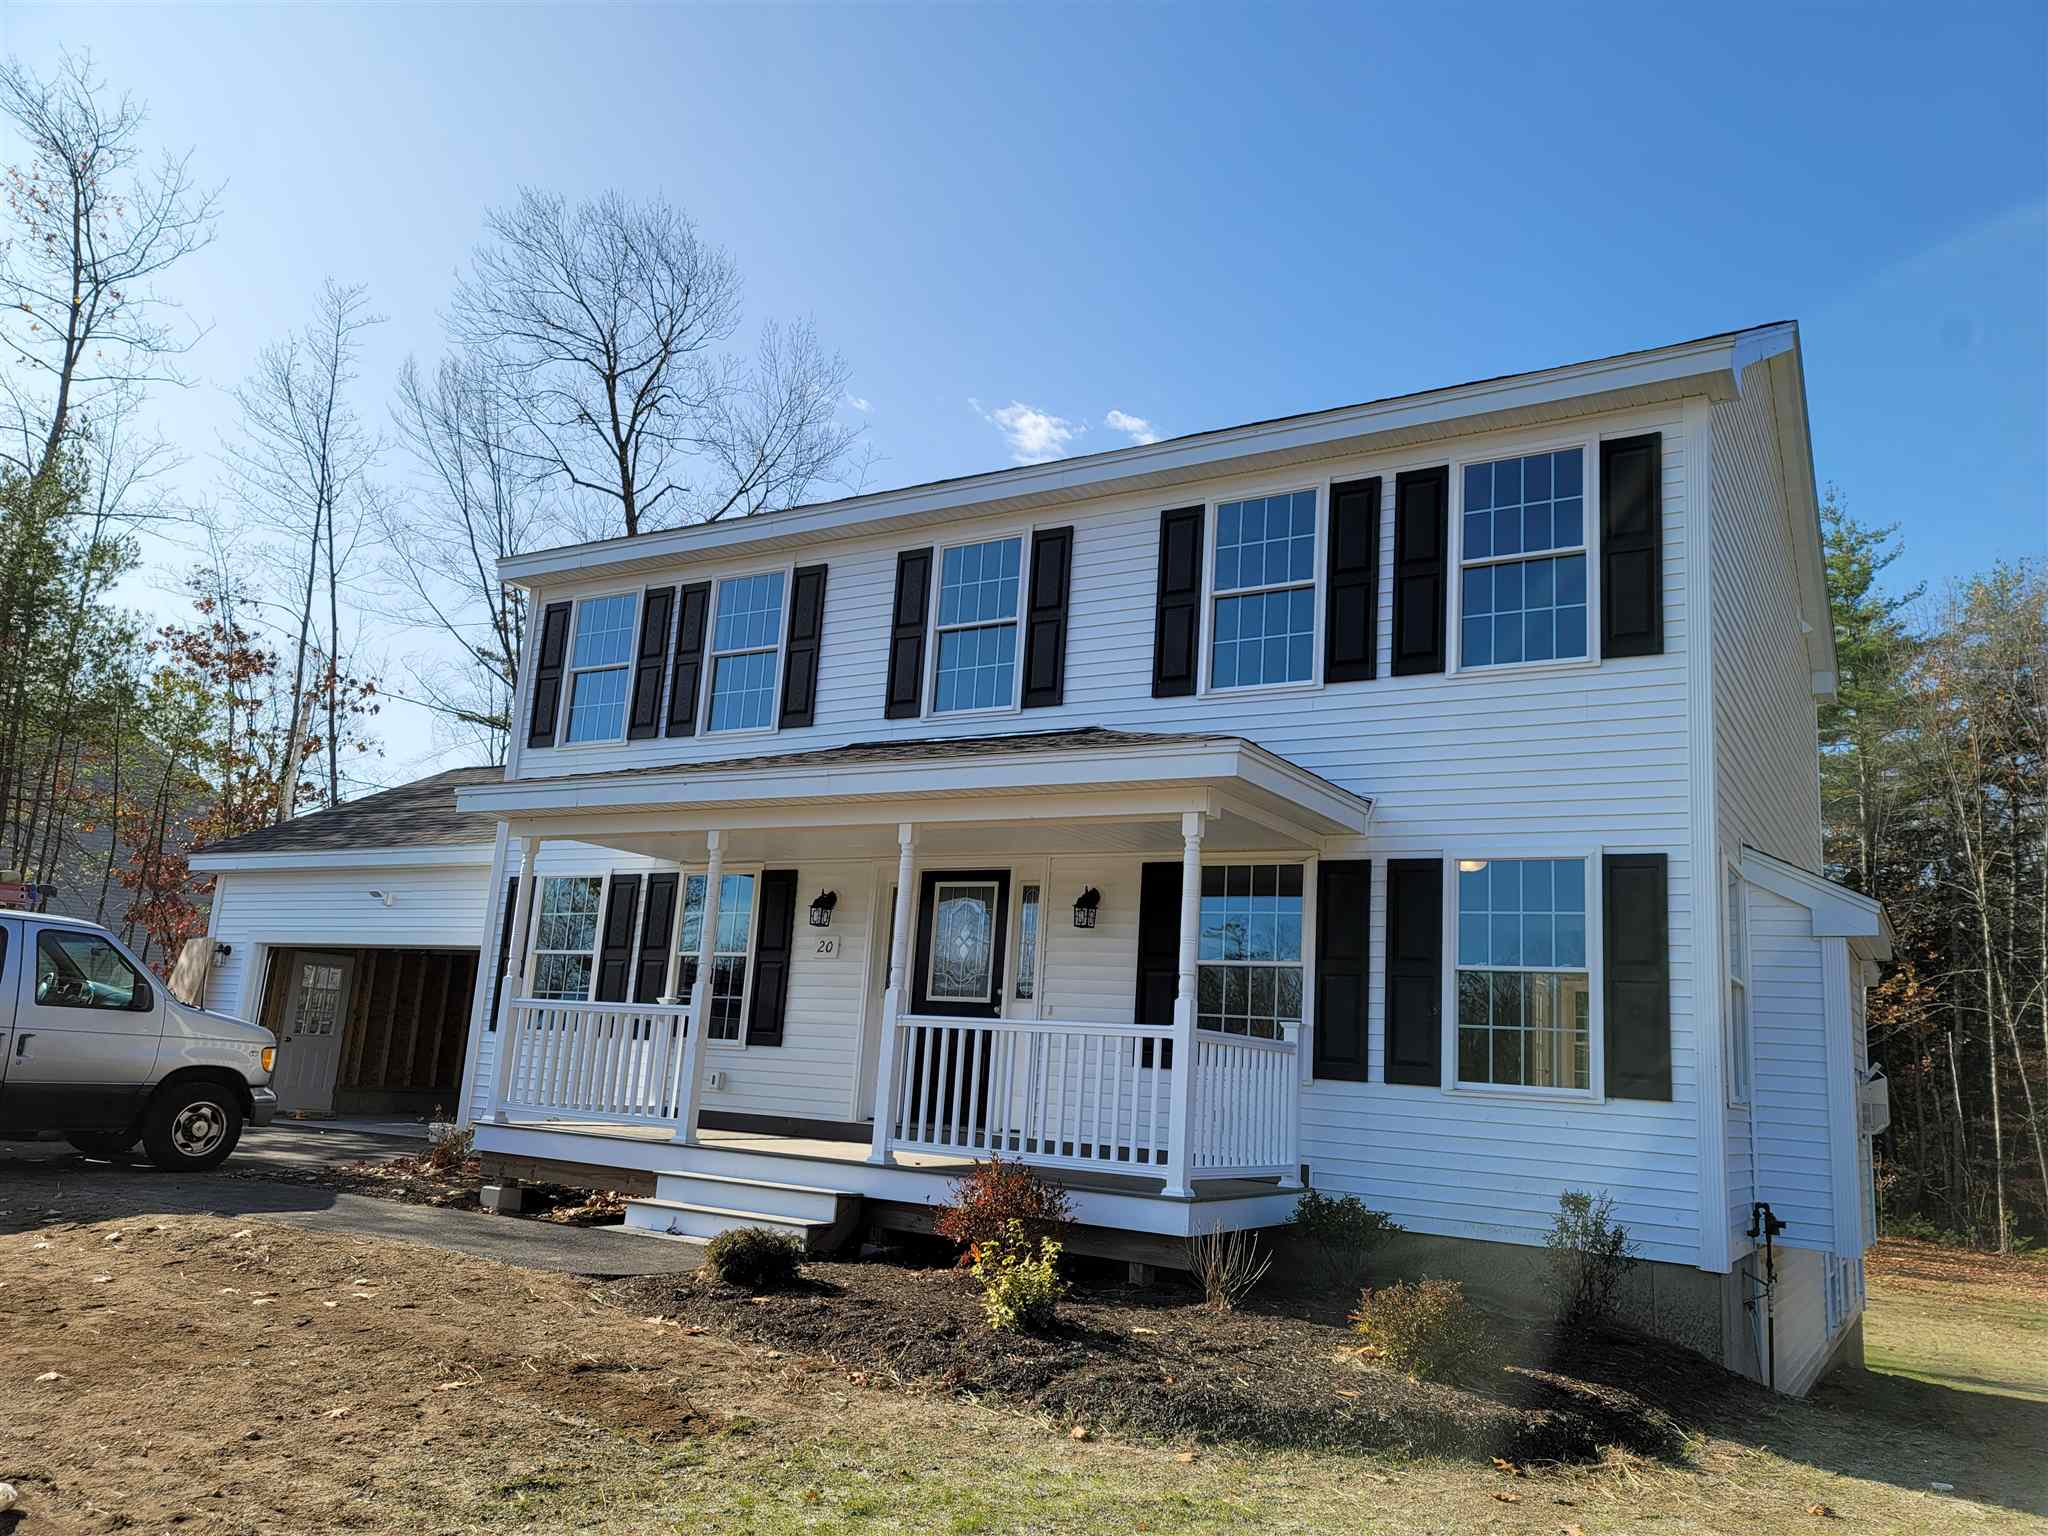 Photo of Lot#20 Peregrine Way Milford NH 03055